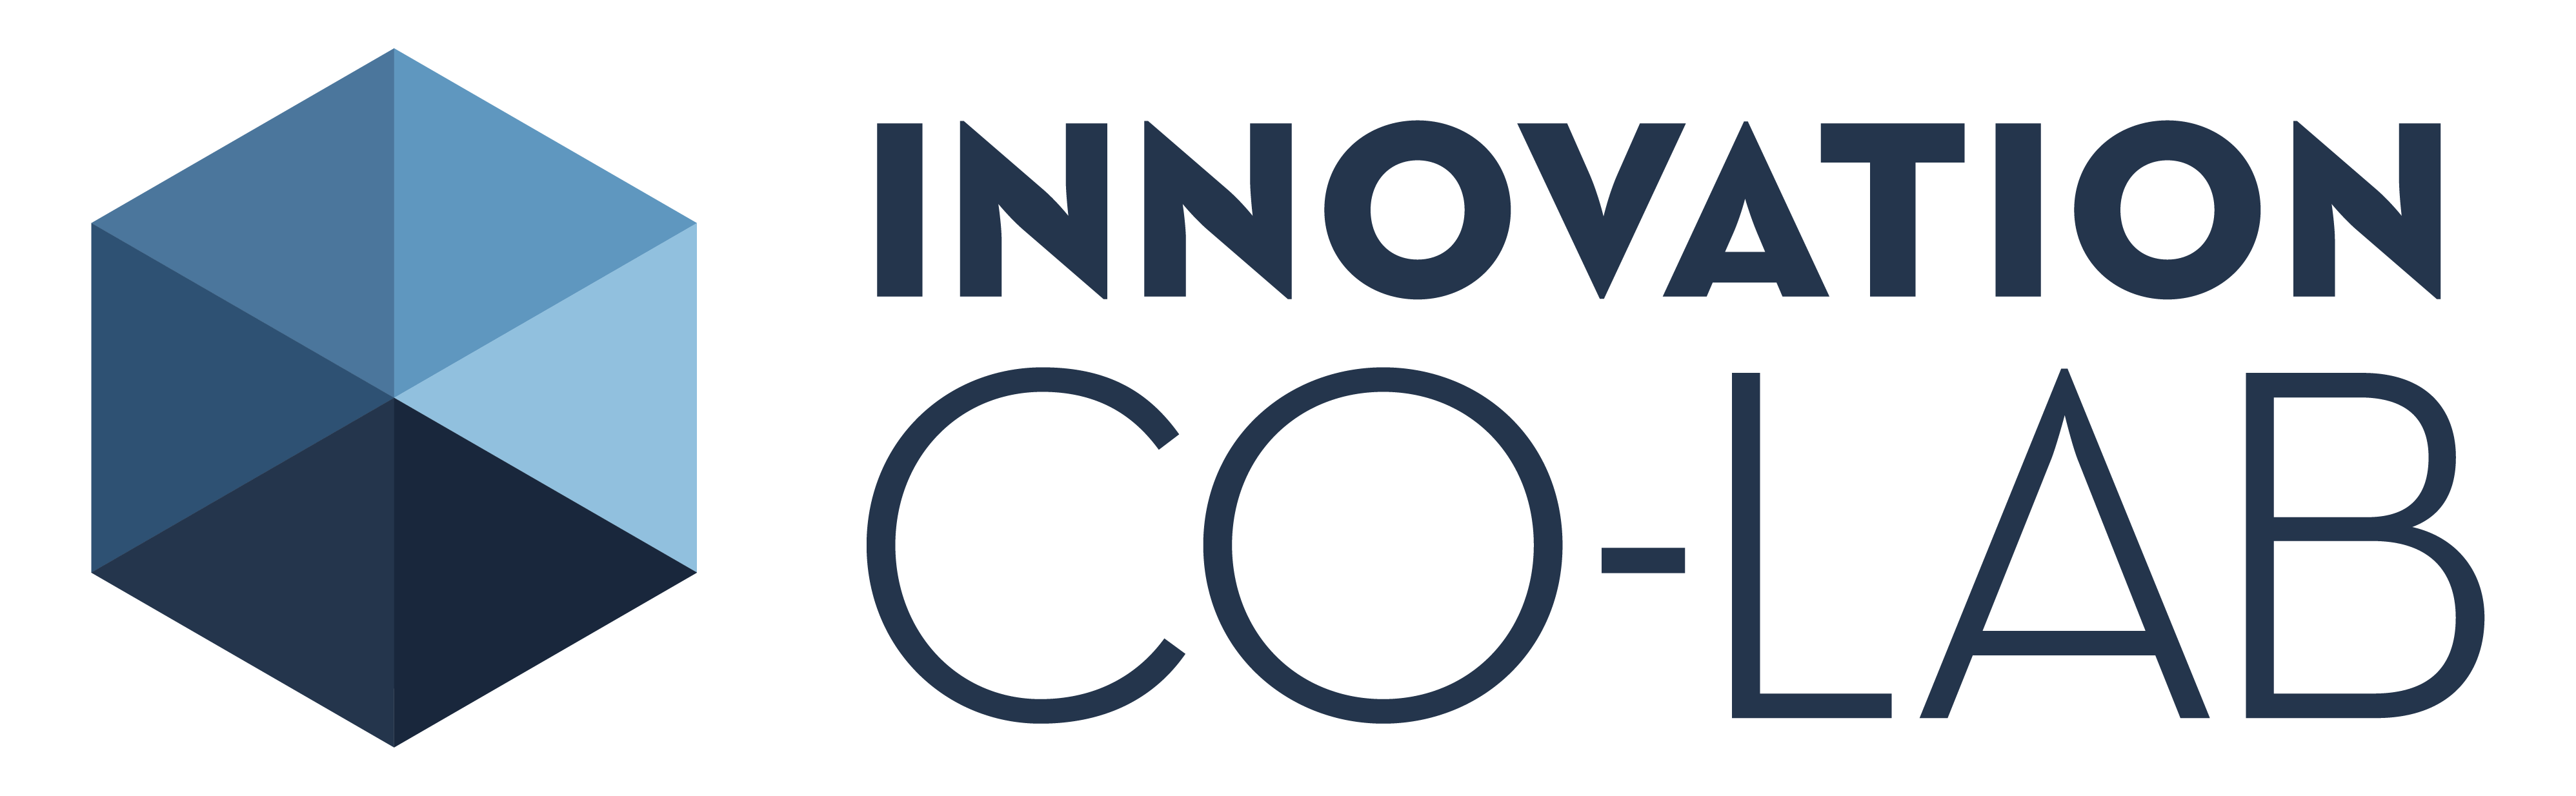 Innovation Co-Lab hexagon logo in blue, with text